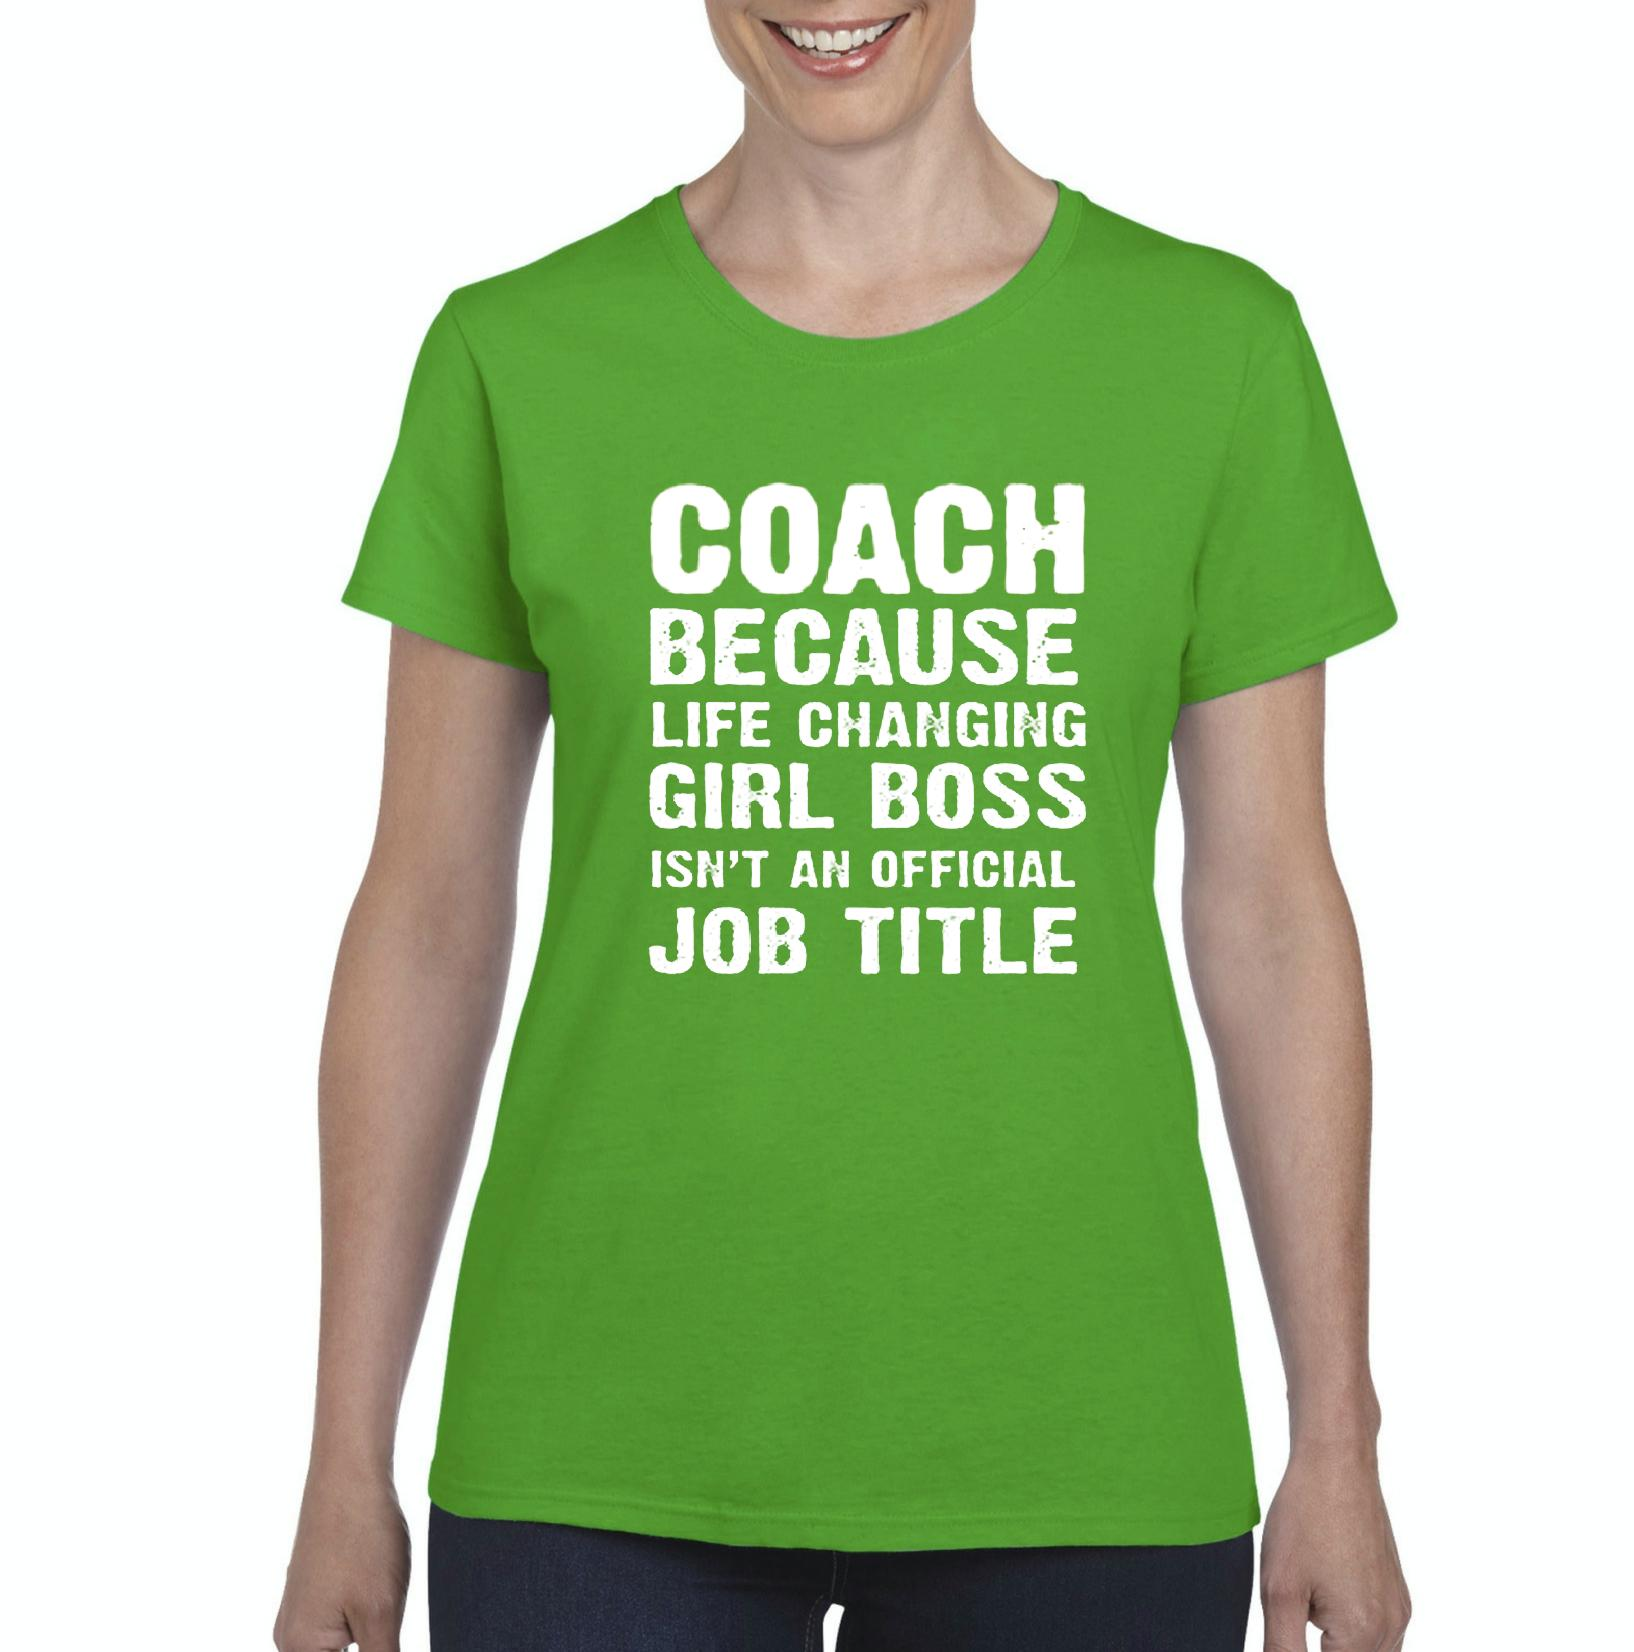 Ugo Coach Because Life Changing Girl Boss Isnt Job Title Humor Xmas Birthday Gift Women's T-shirt Tee Clothes